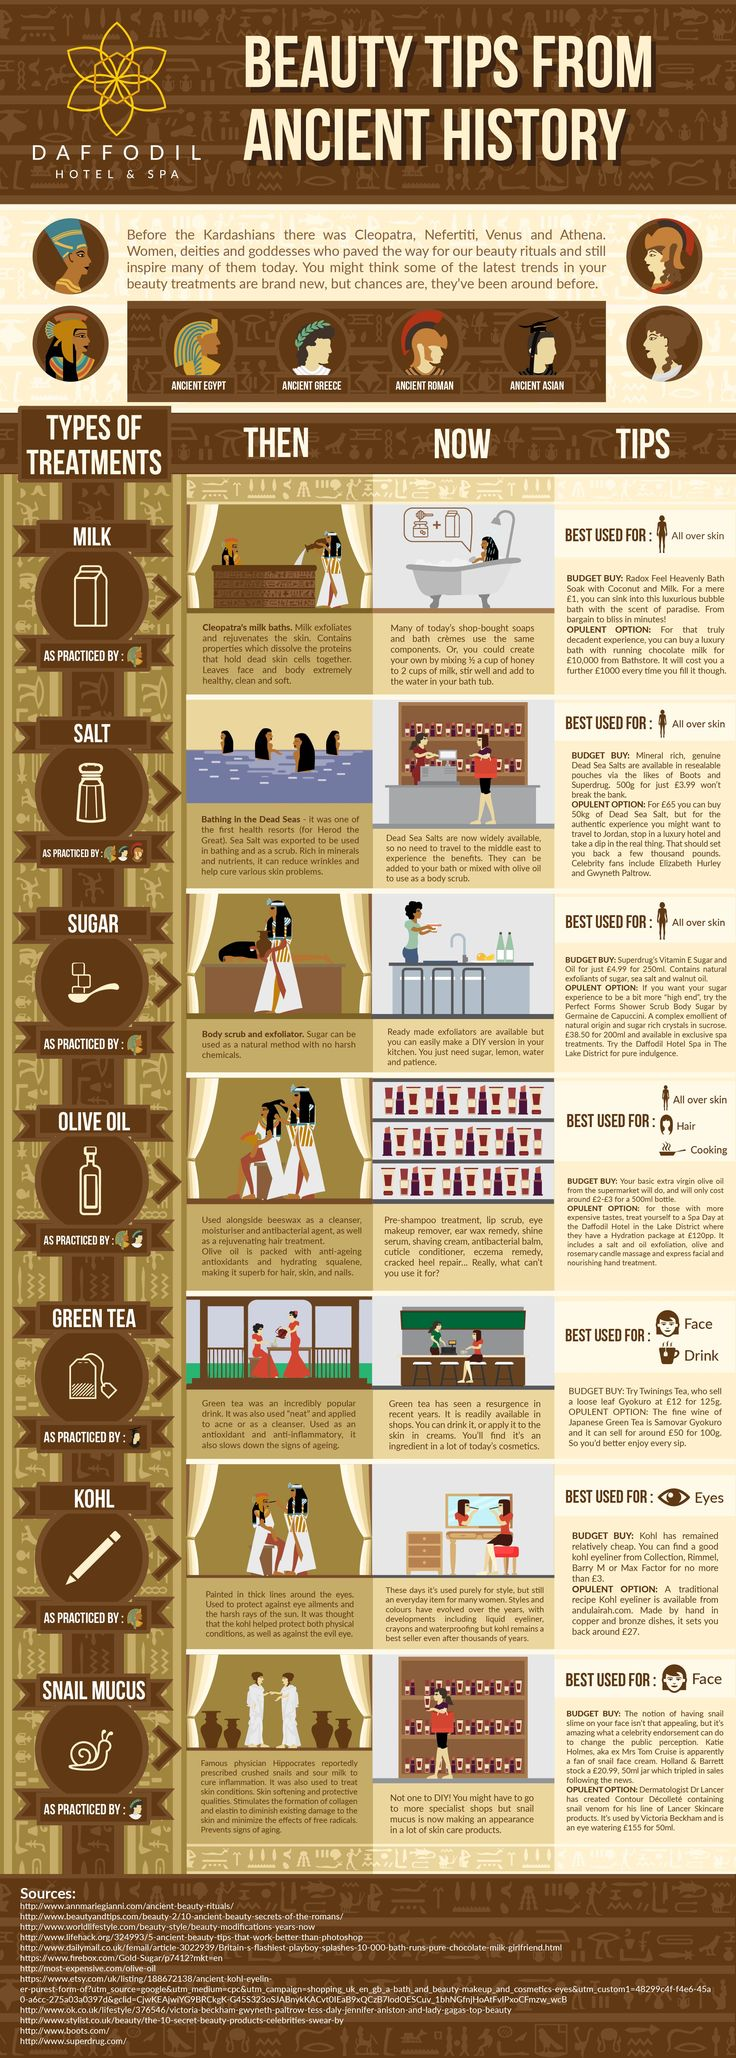 In this infographic, Daffodil Hotel looks at some of the rituals used by Ancient Greeks, Romans, Indians and Egyptians and the modern day equivalent. They also give you budget and high end options that you can seek out in today's market, so that you too can reap the benefits of these ancient rituals. Learn how Cleopatra bathed, how Herod the Great visited the first health spa and how Hippocrates liked to crush snails! Find your perfect adaptation of ancient rituals and take away your own…